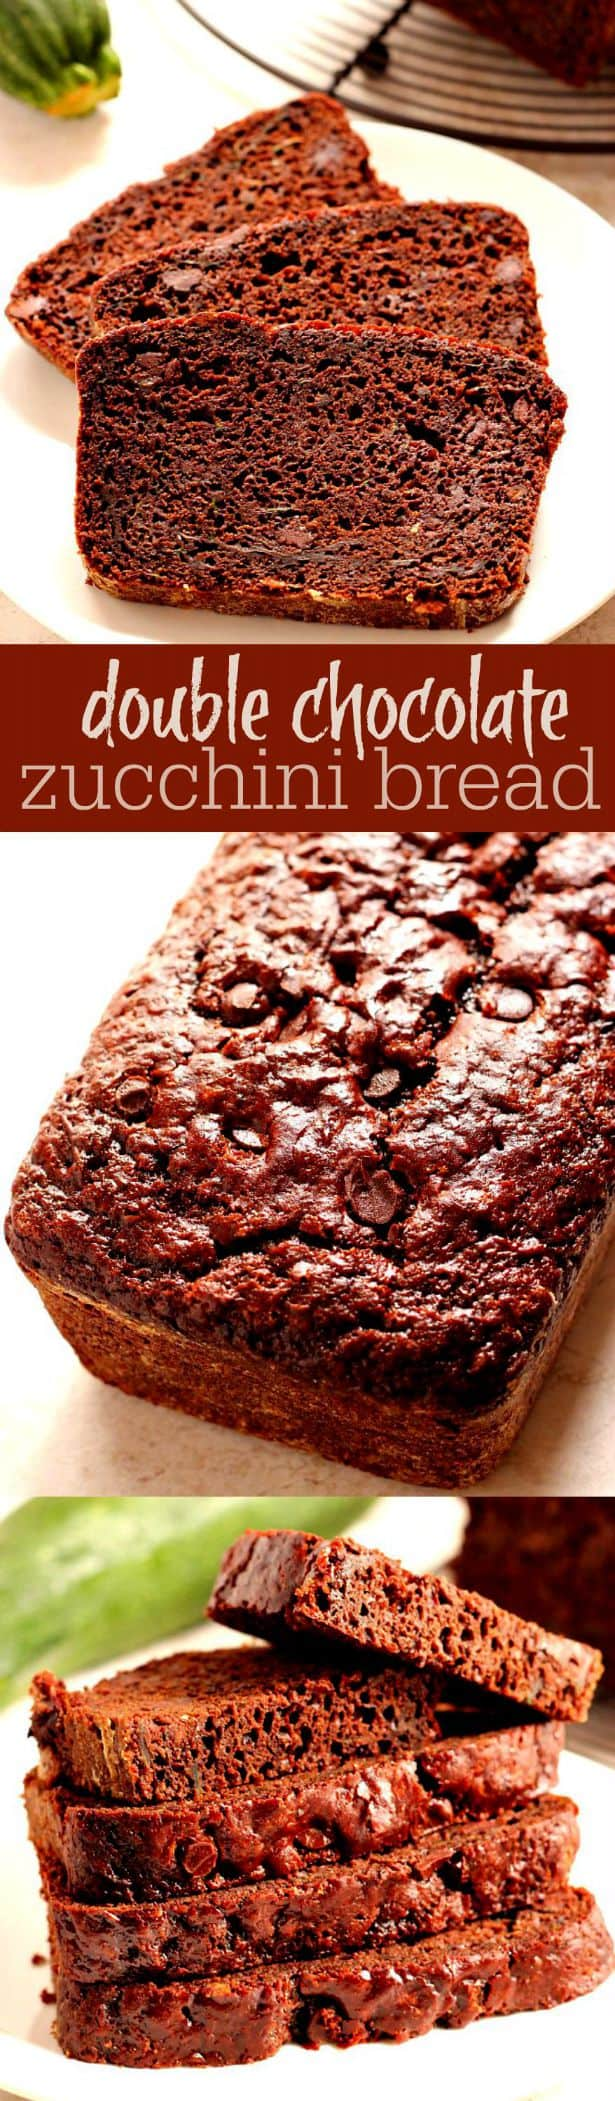 double chocolate zucchini bread long Double Chocolate Zucchini Bread